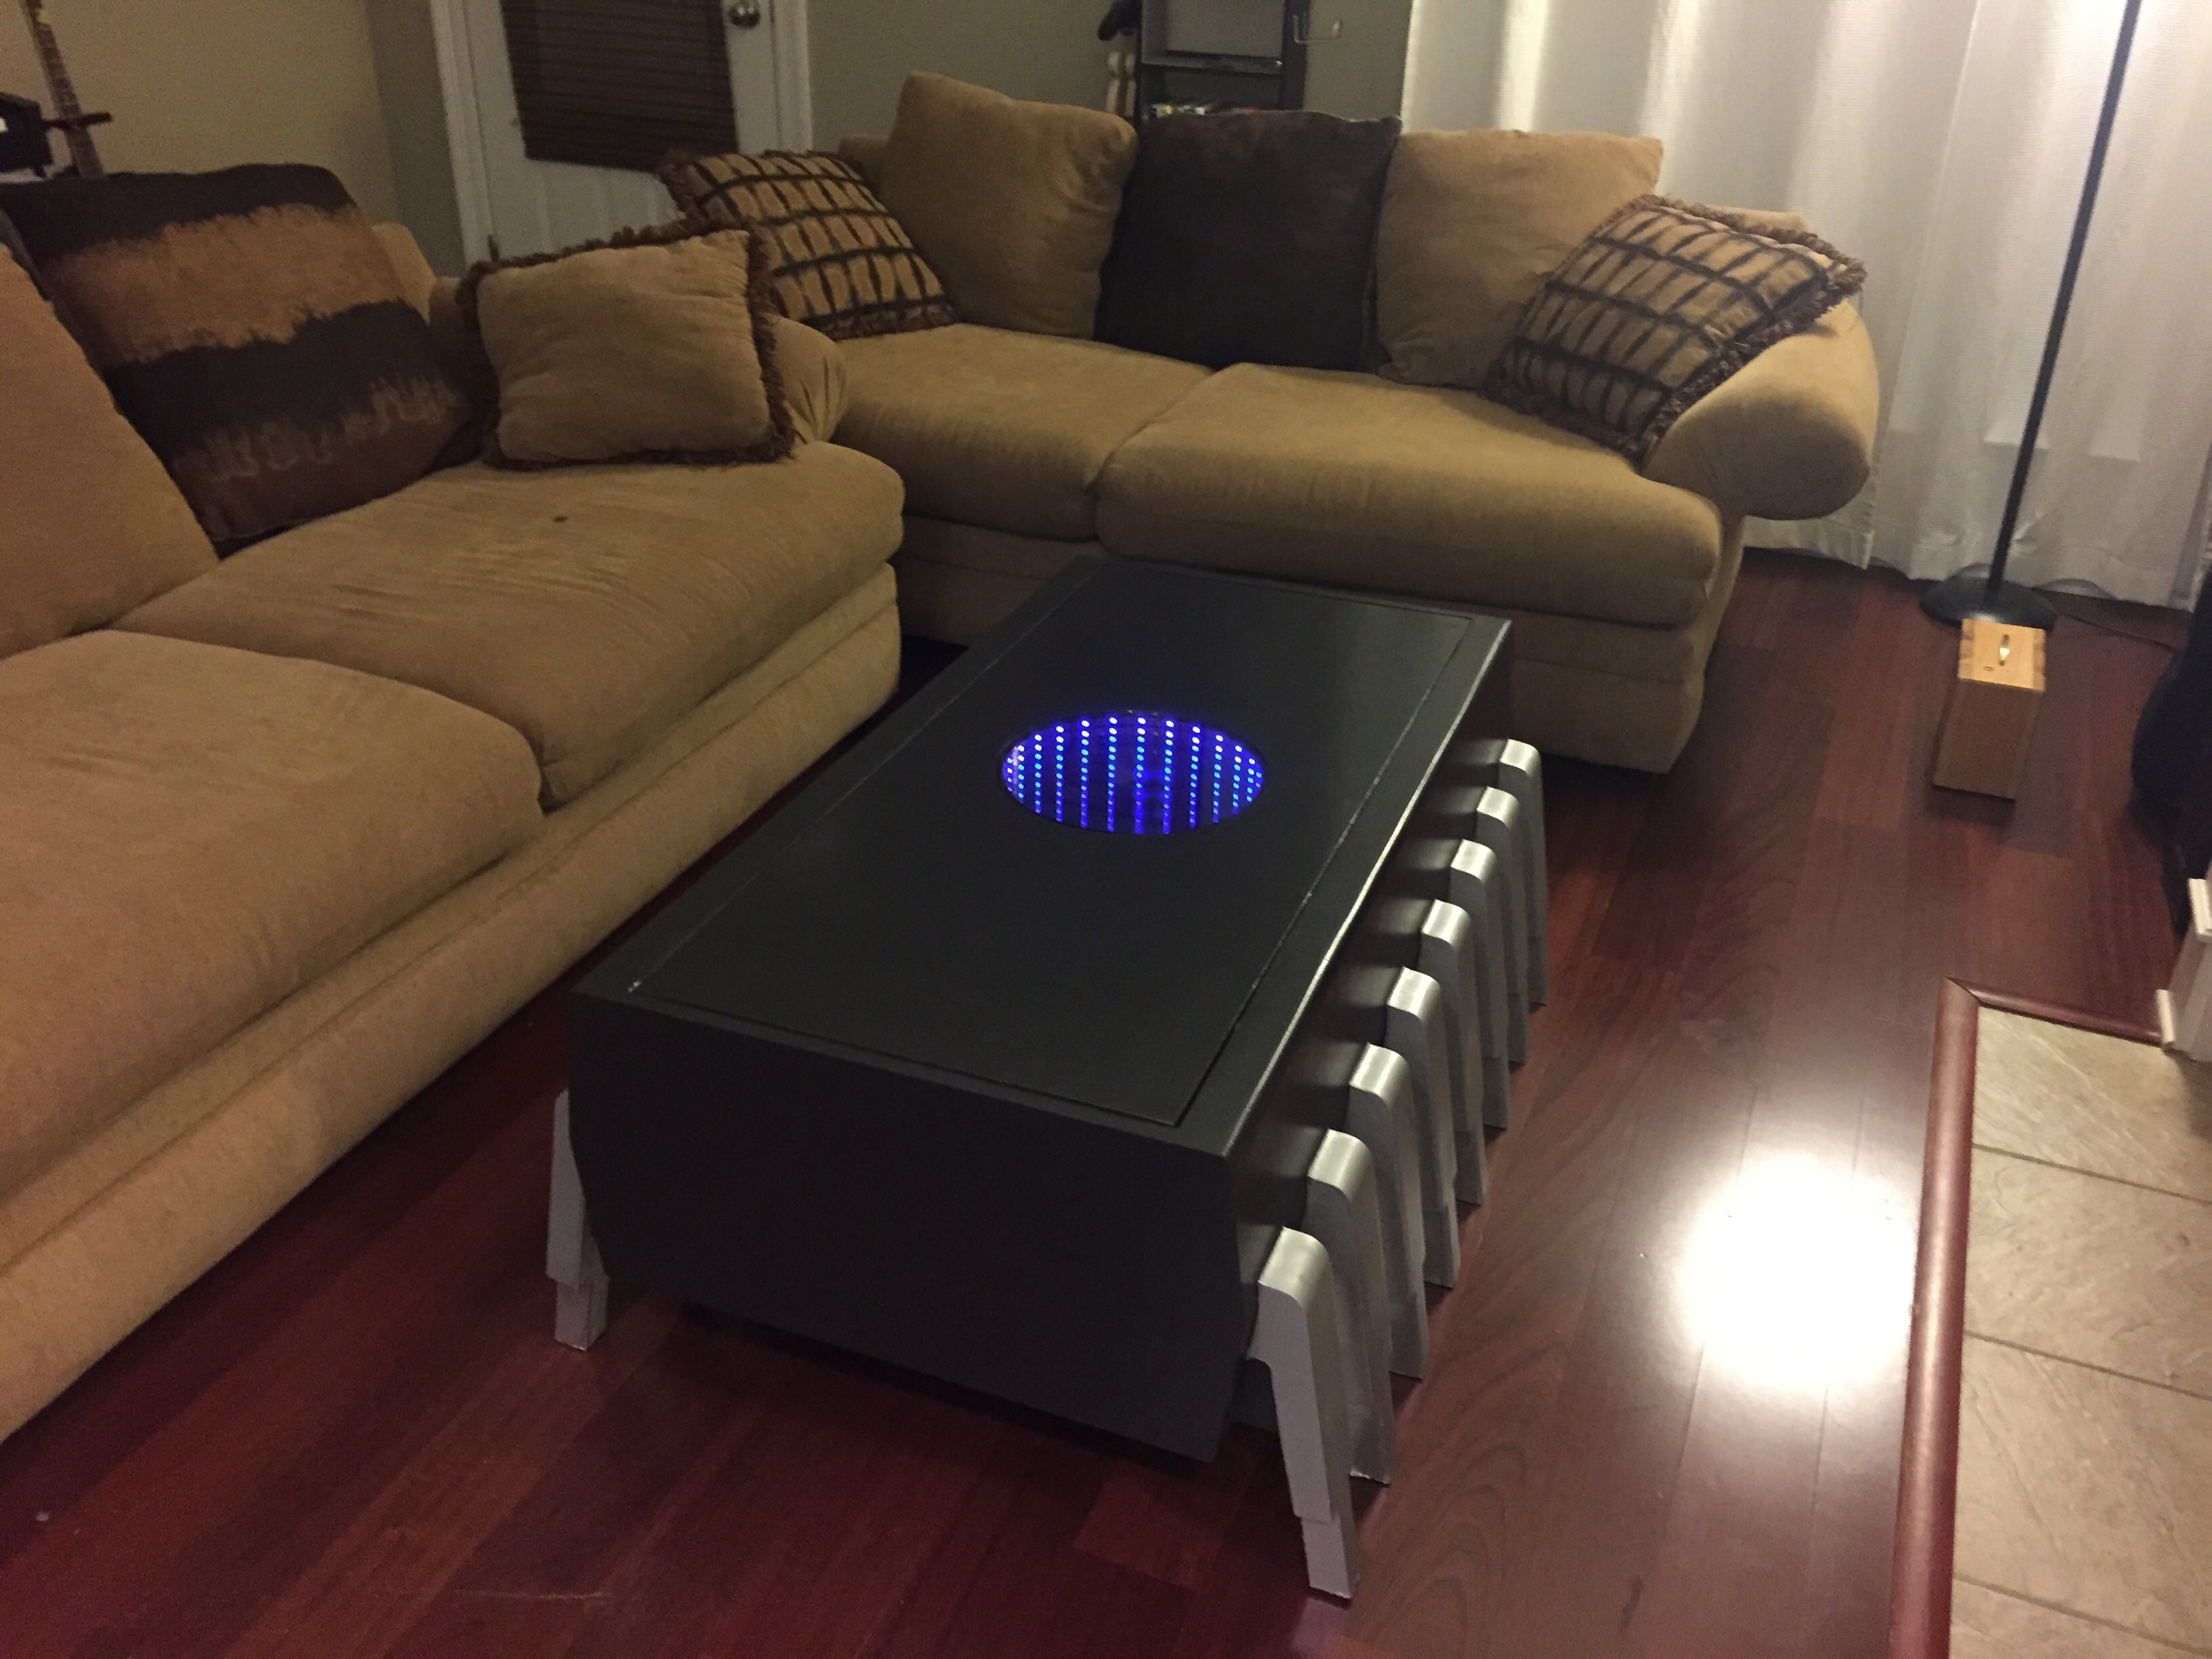 a memory chip coffee table with an